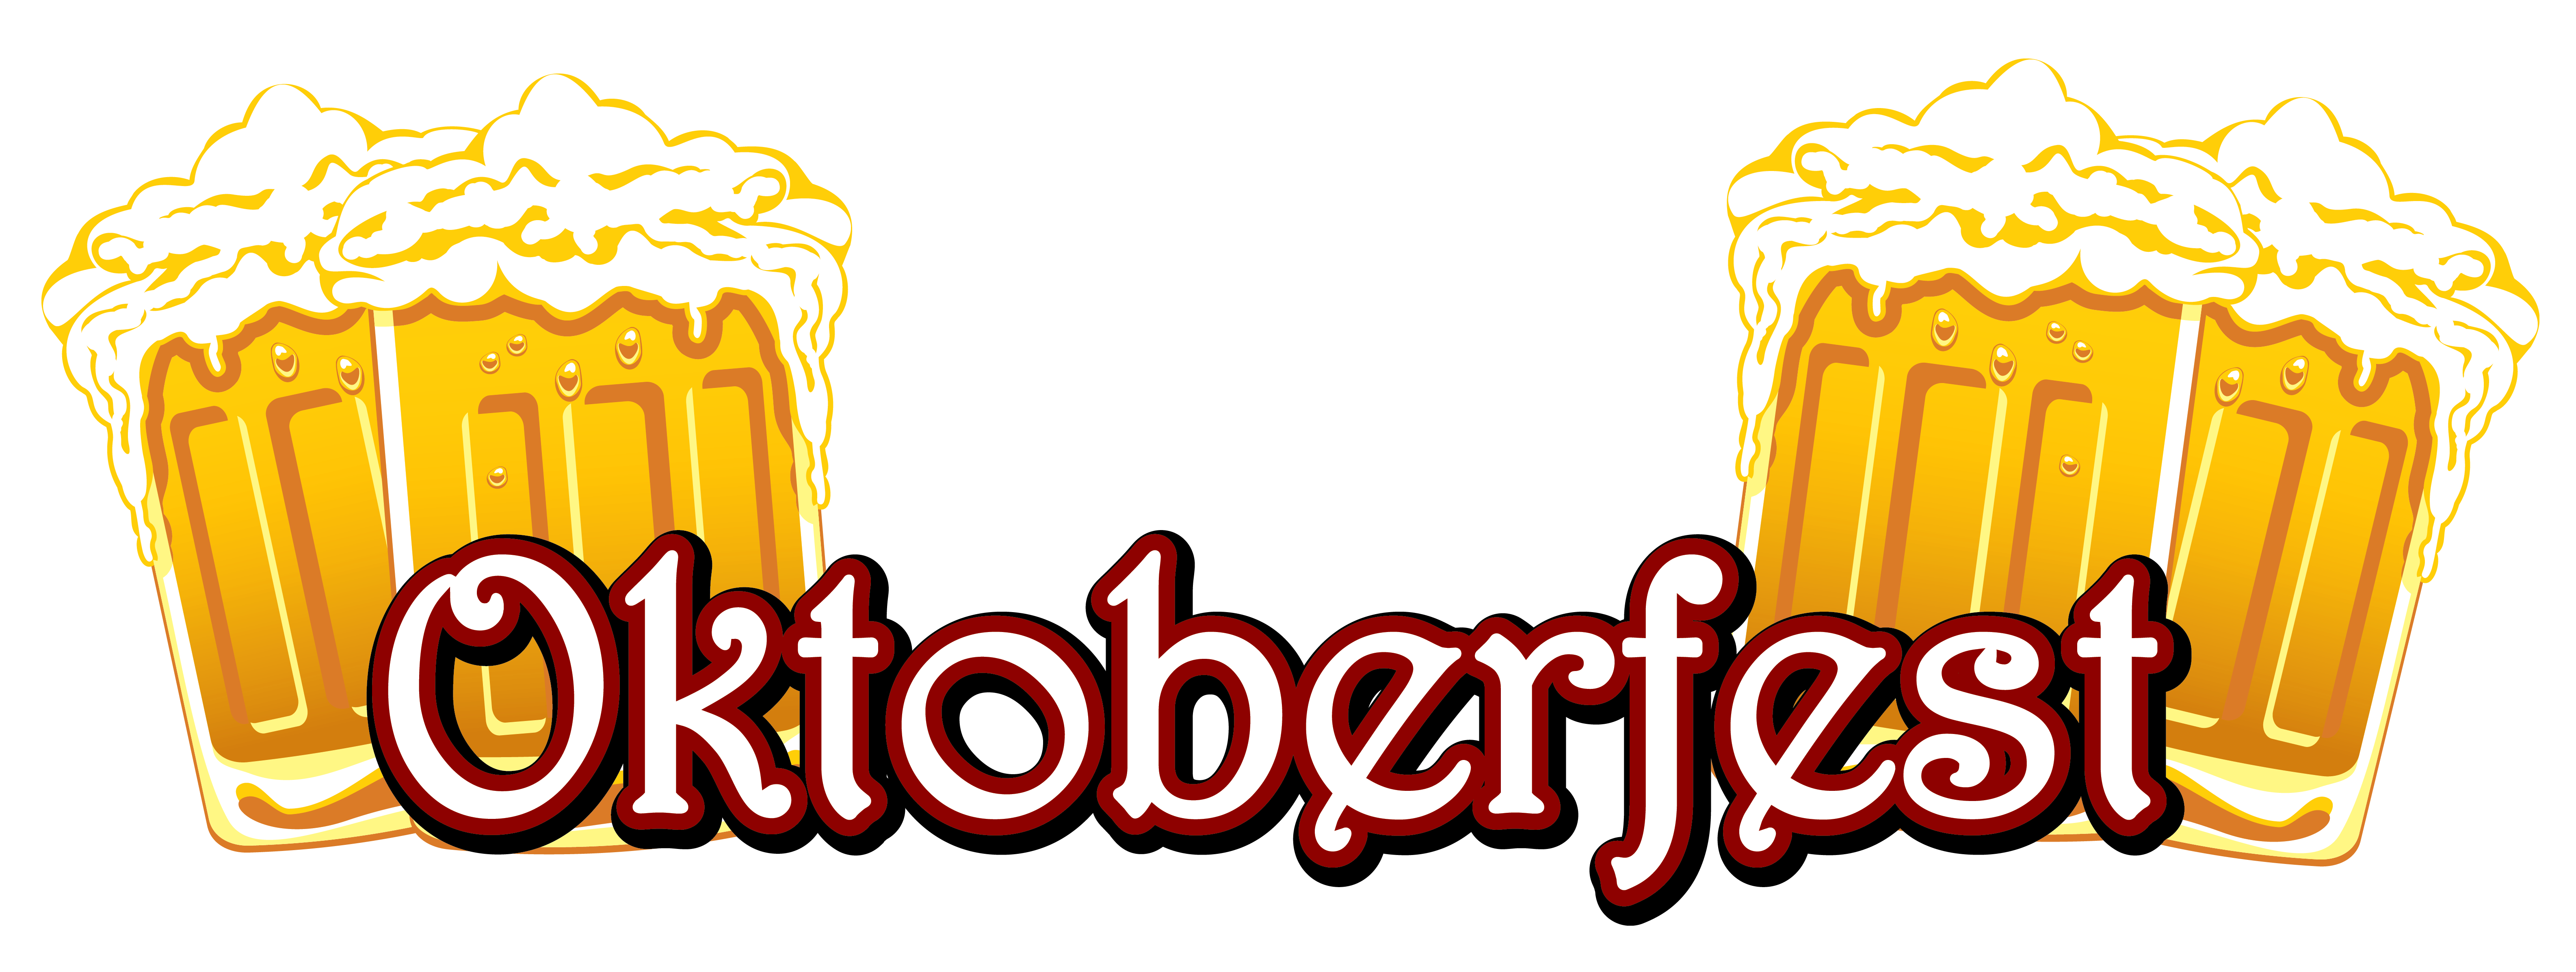 Text and beers png. Oktoberfest vector artwork clip art free download